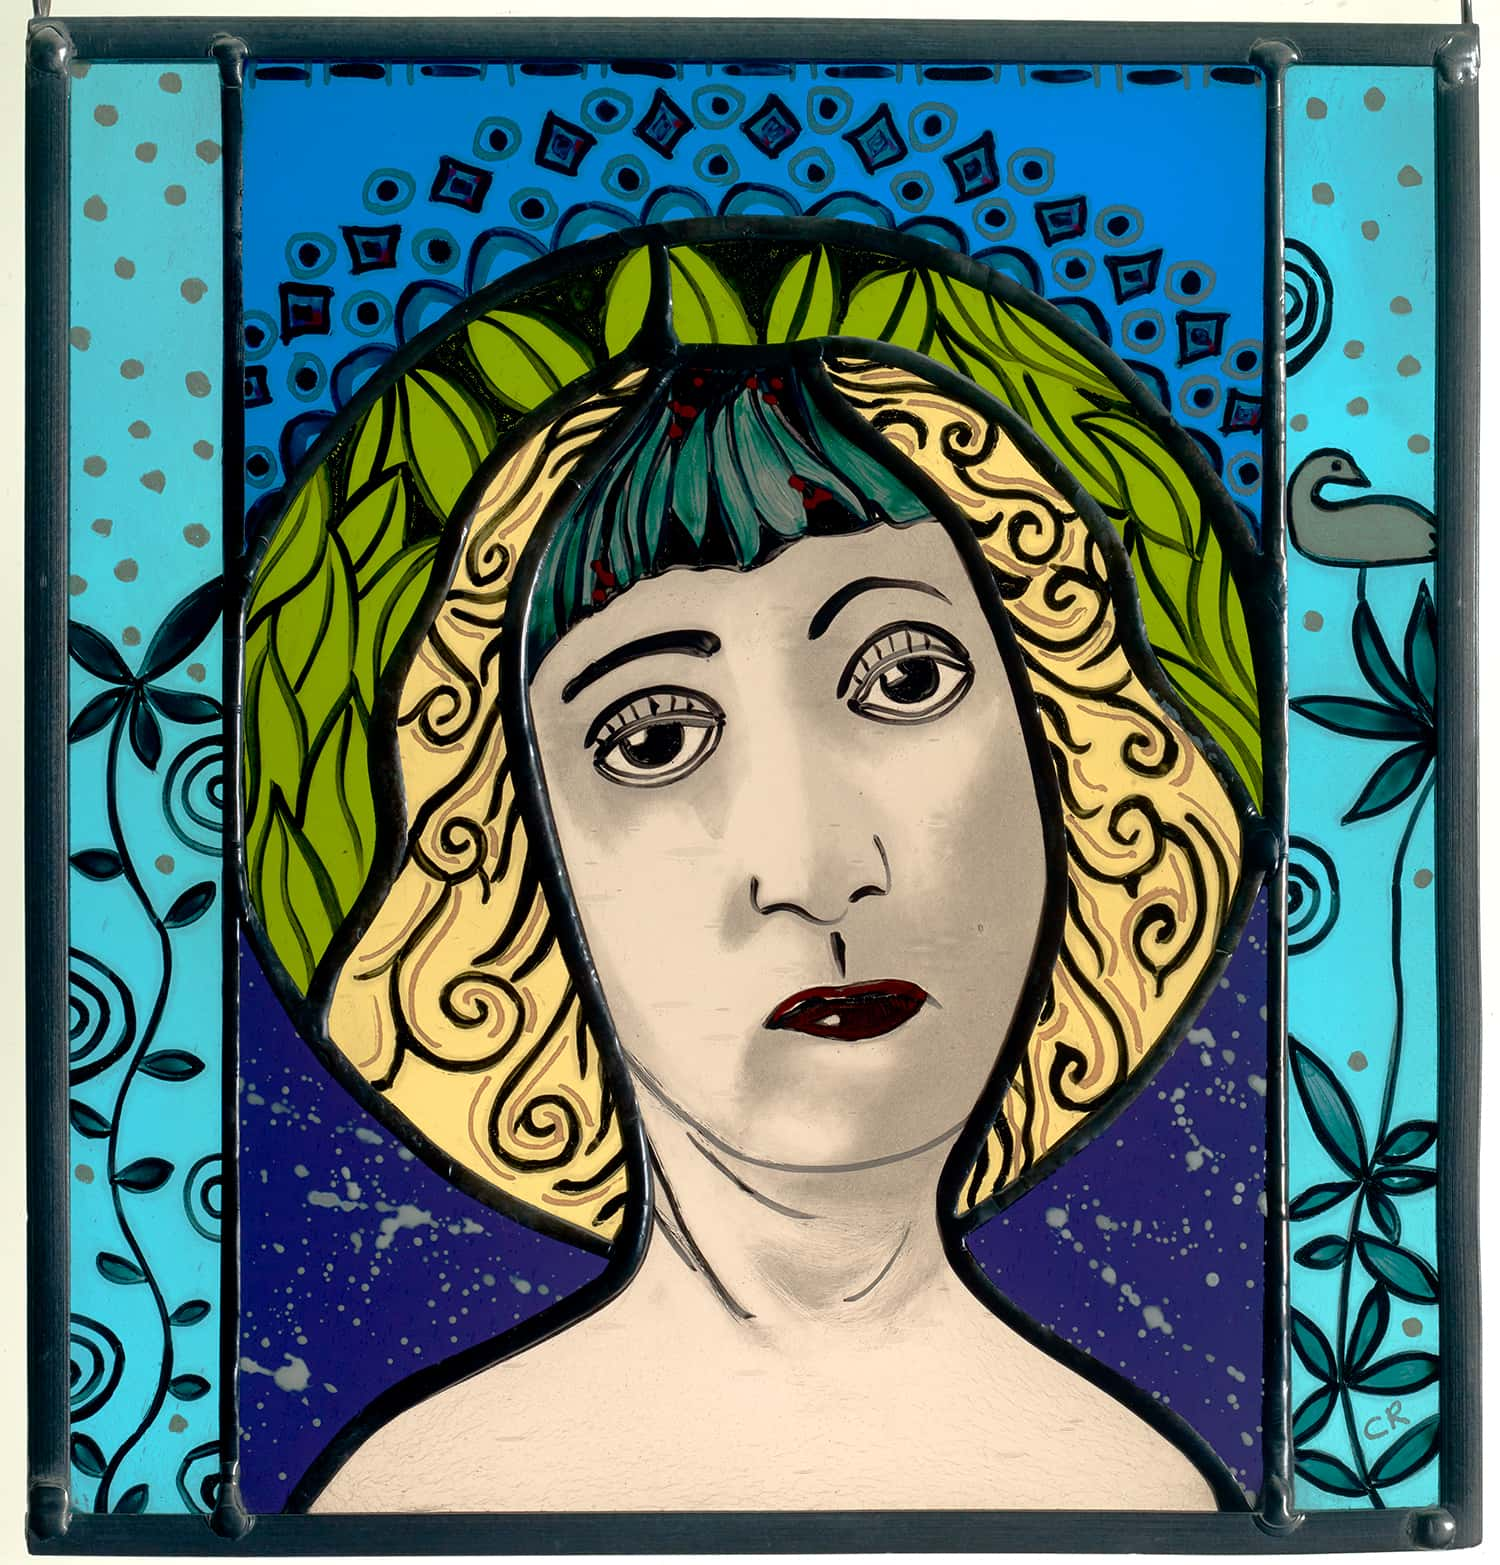 Glass Painting Mella Bella 20cm x 22cm